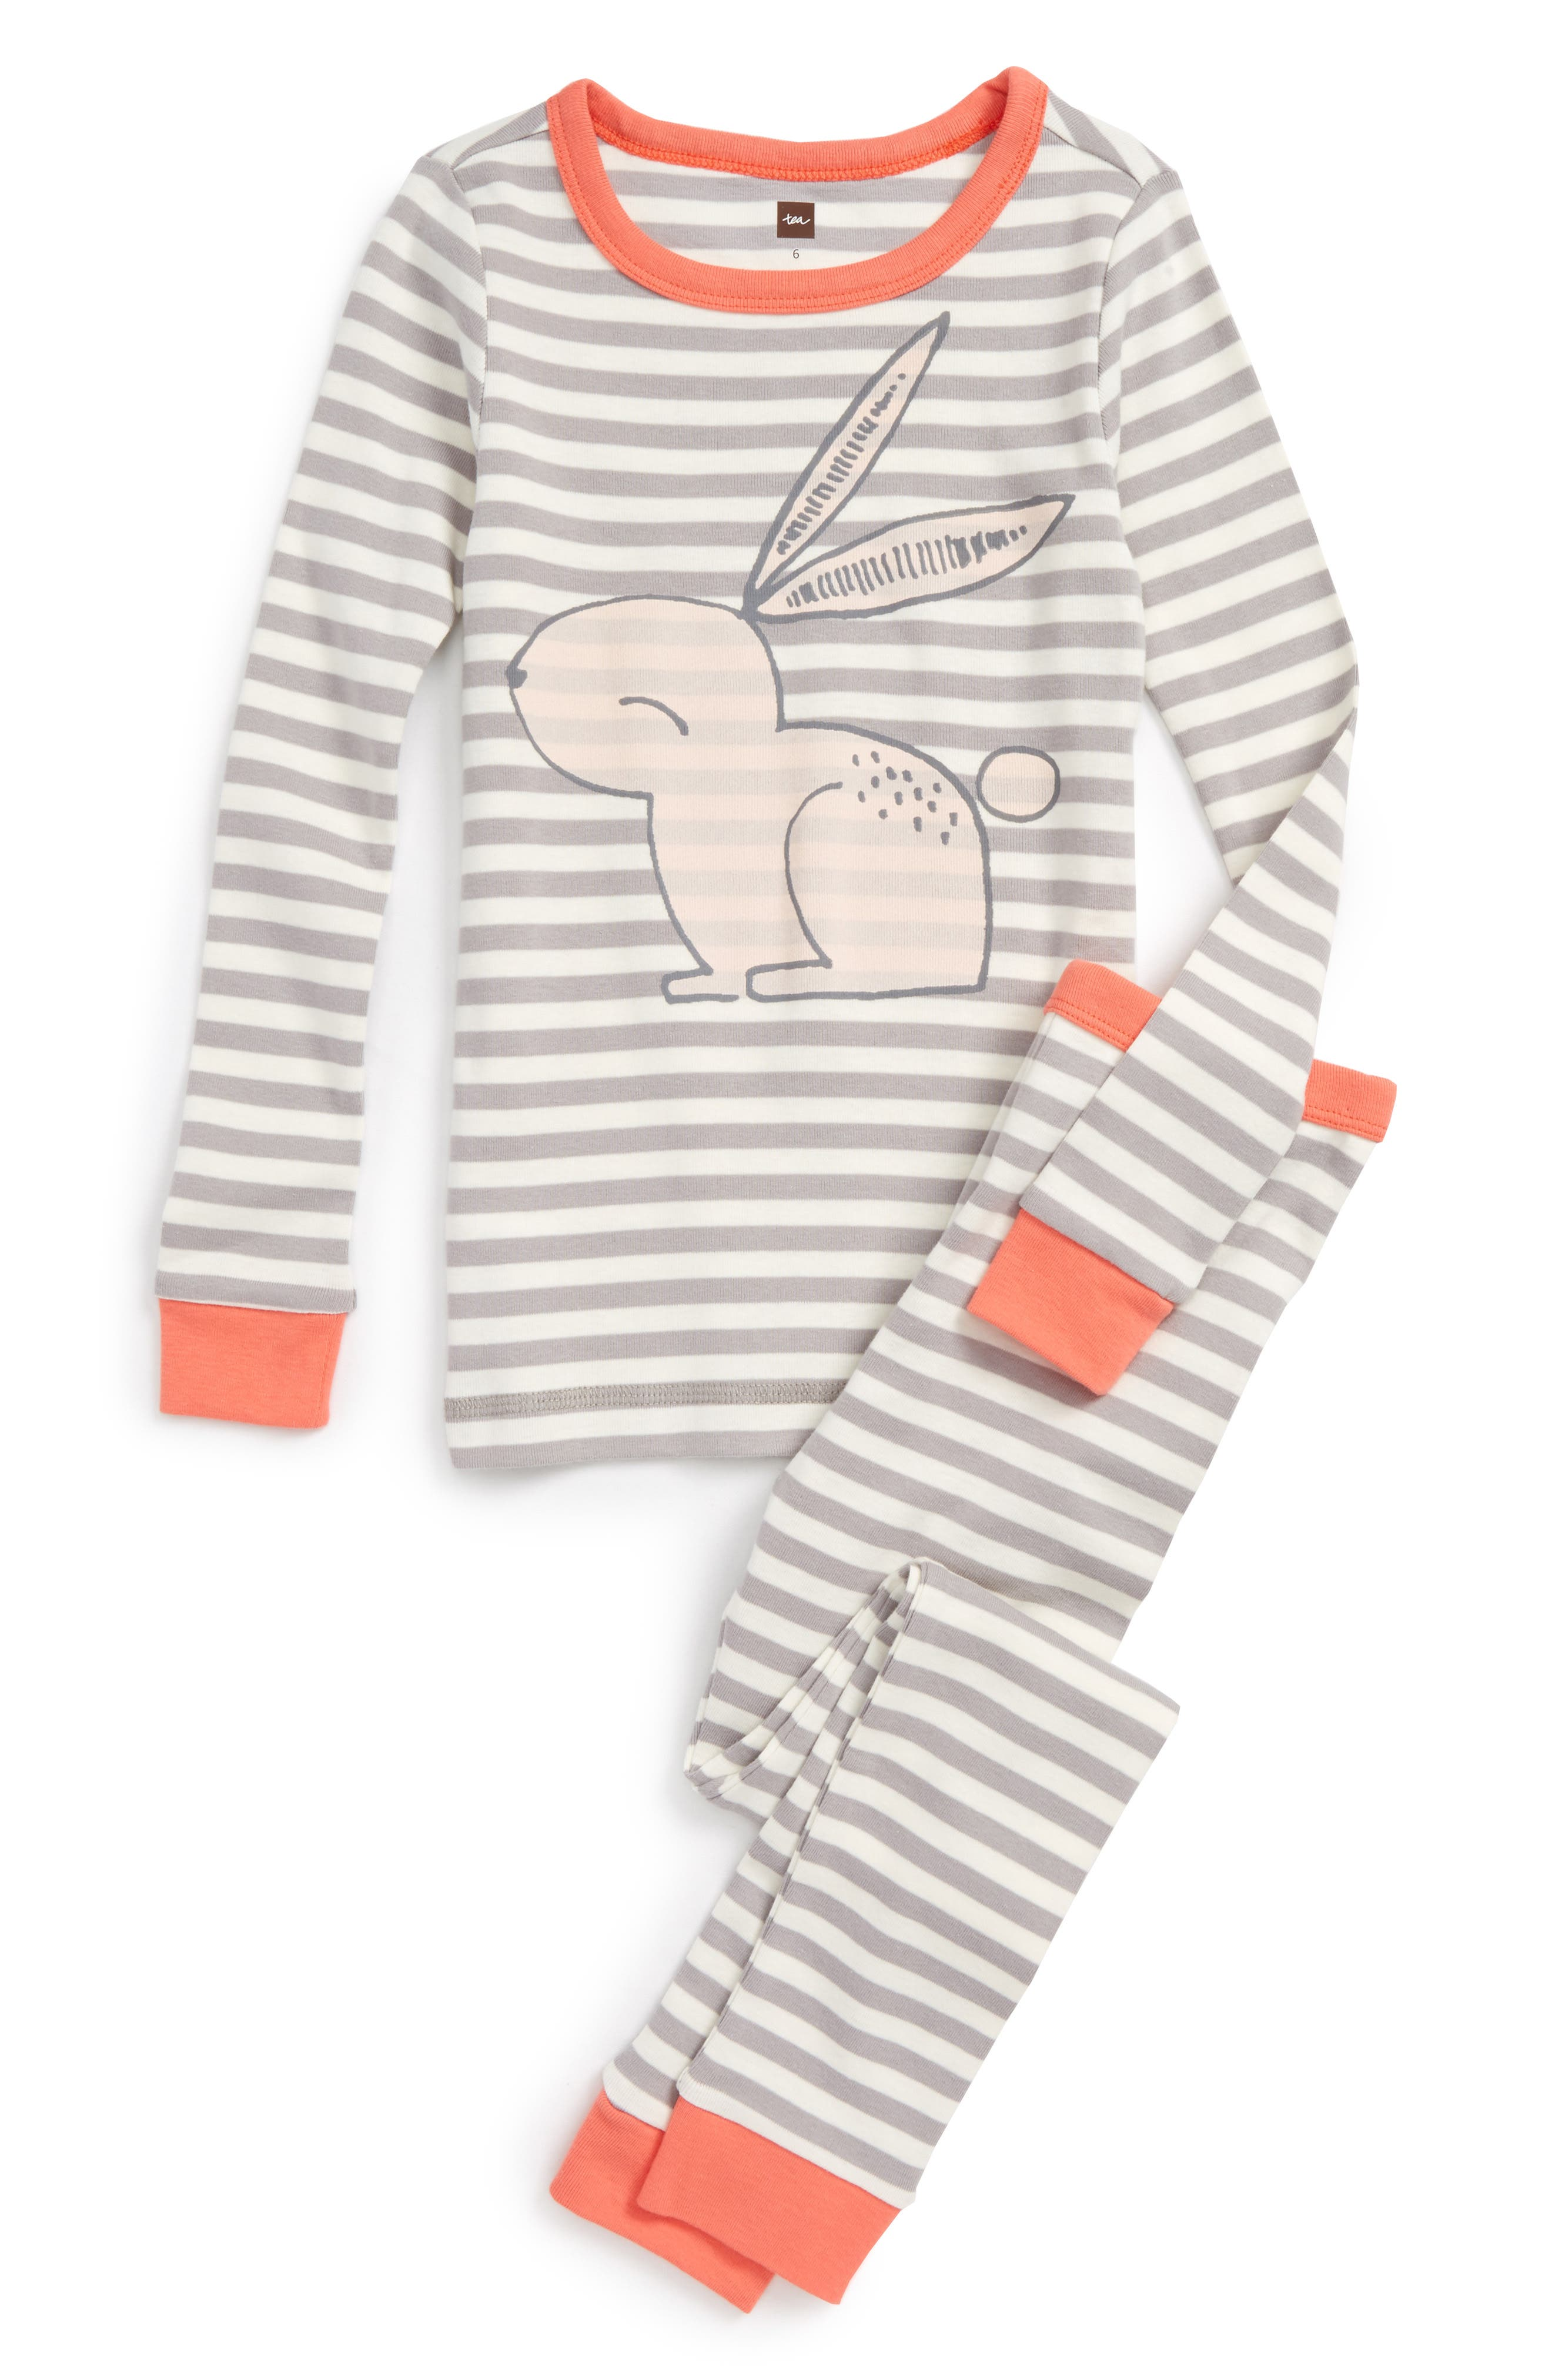 Rabaid Fitted Two-Piece Pajamas,                             Main thumbnail 1, color,                             052